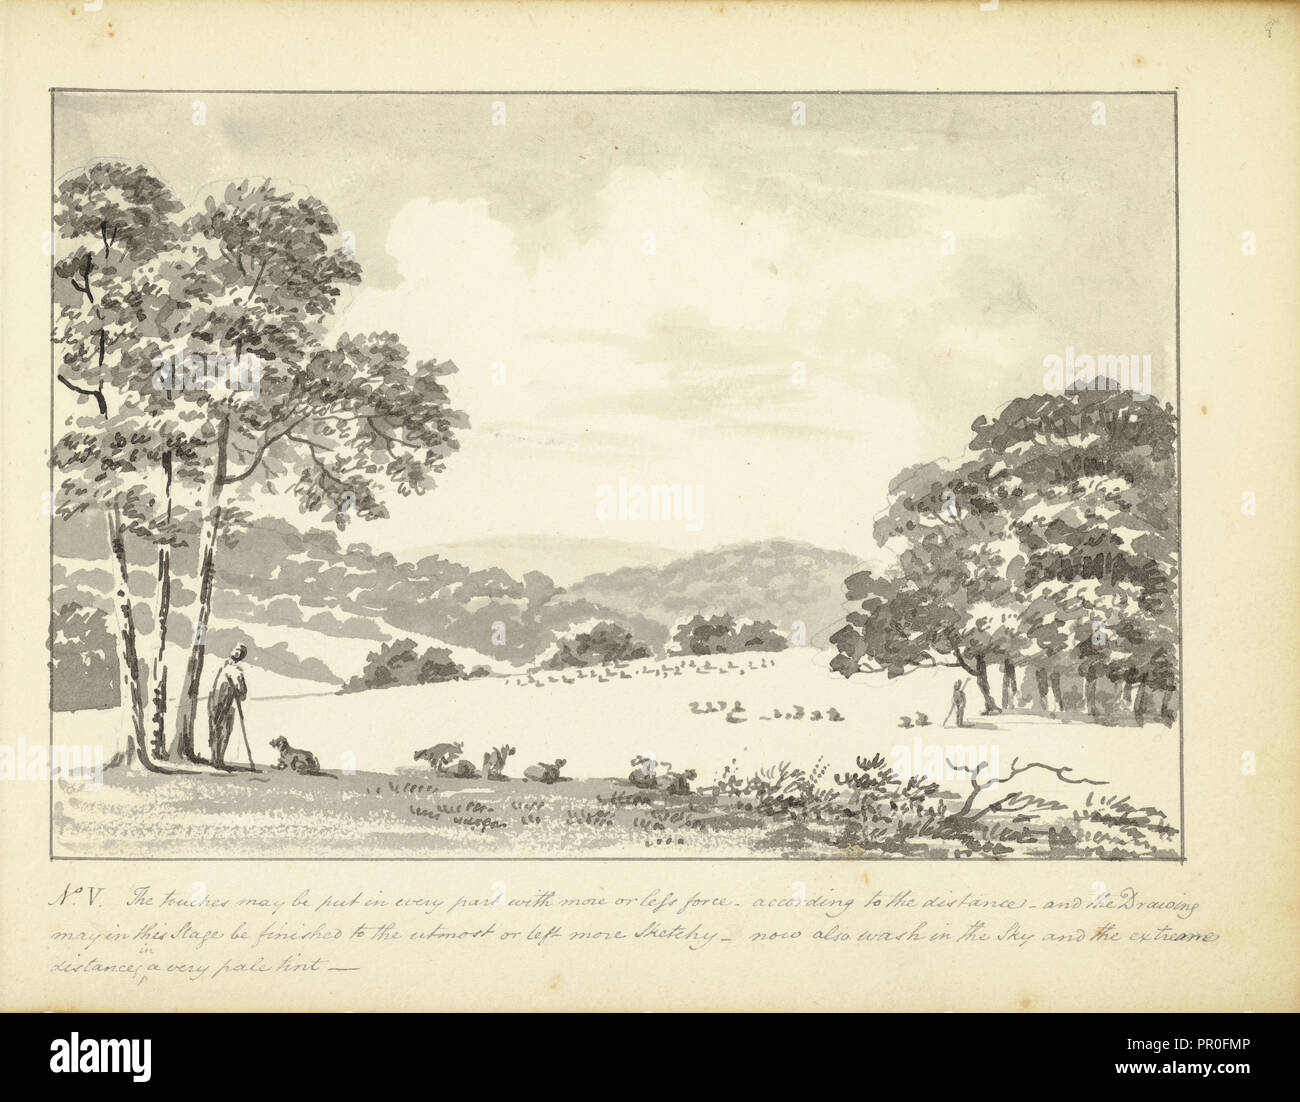 No. V . The touches may be put in every part, A few hints concerning landscape sketches, ca. 1810, Humphry Repton architecture - Stock Image